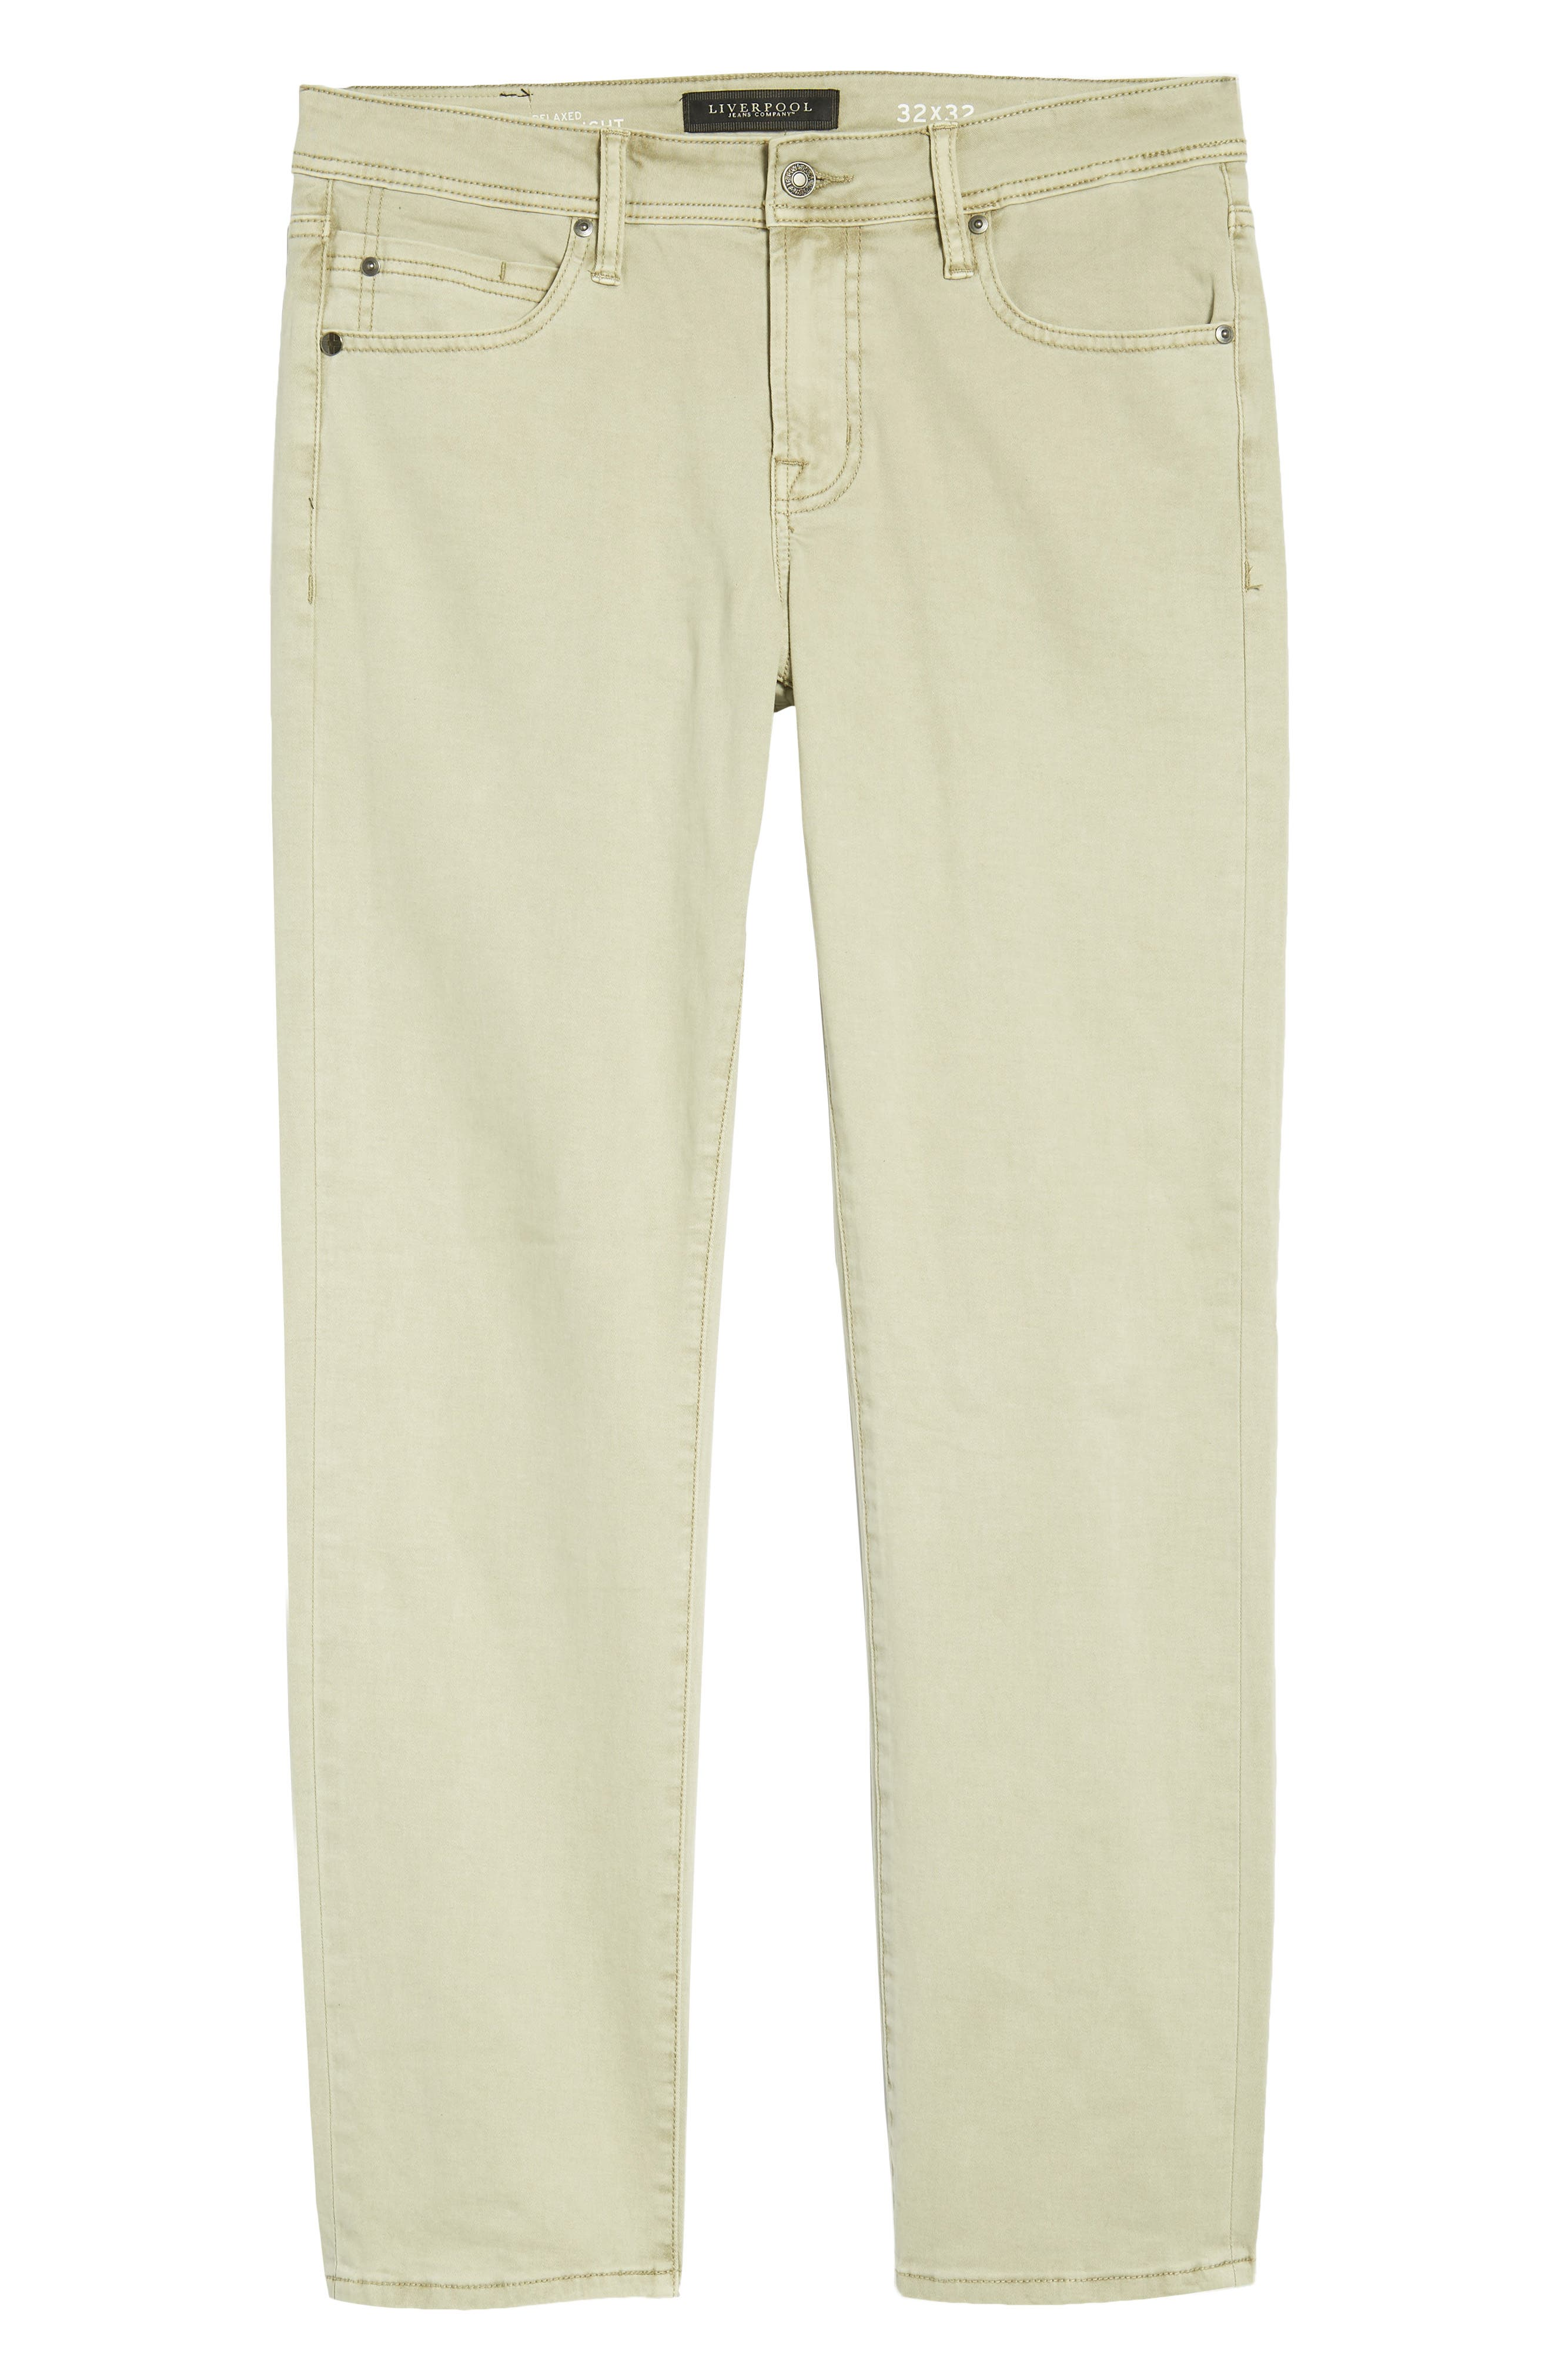 Jeans Co. Straight Leg Jeans,                             Alternate thumbnail 6, color,                             Sandstrom